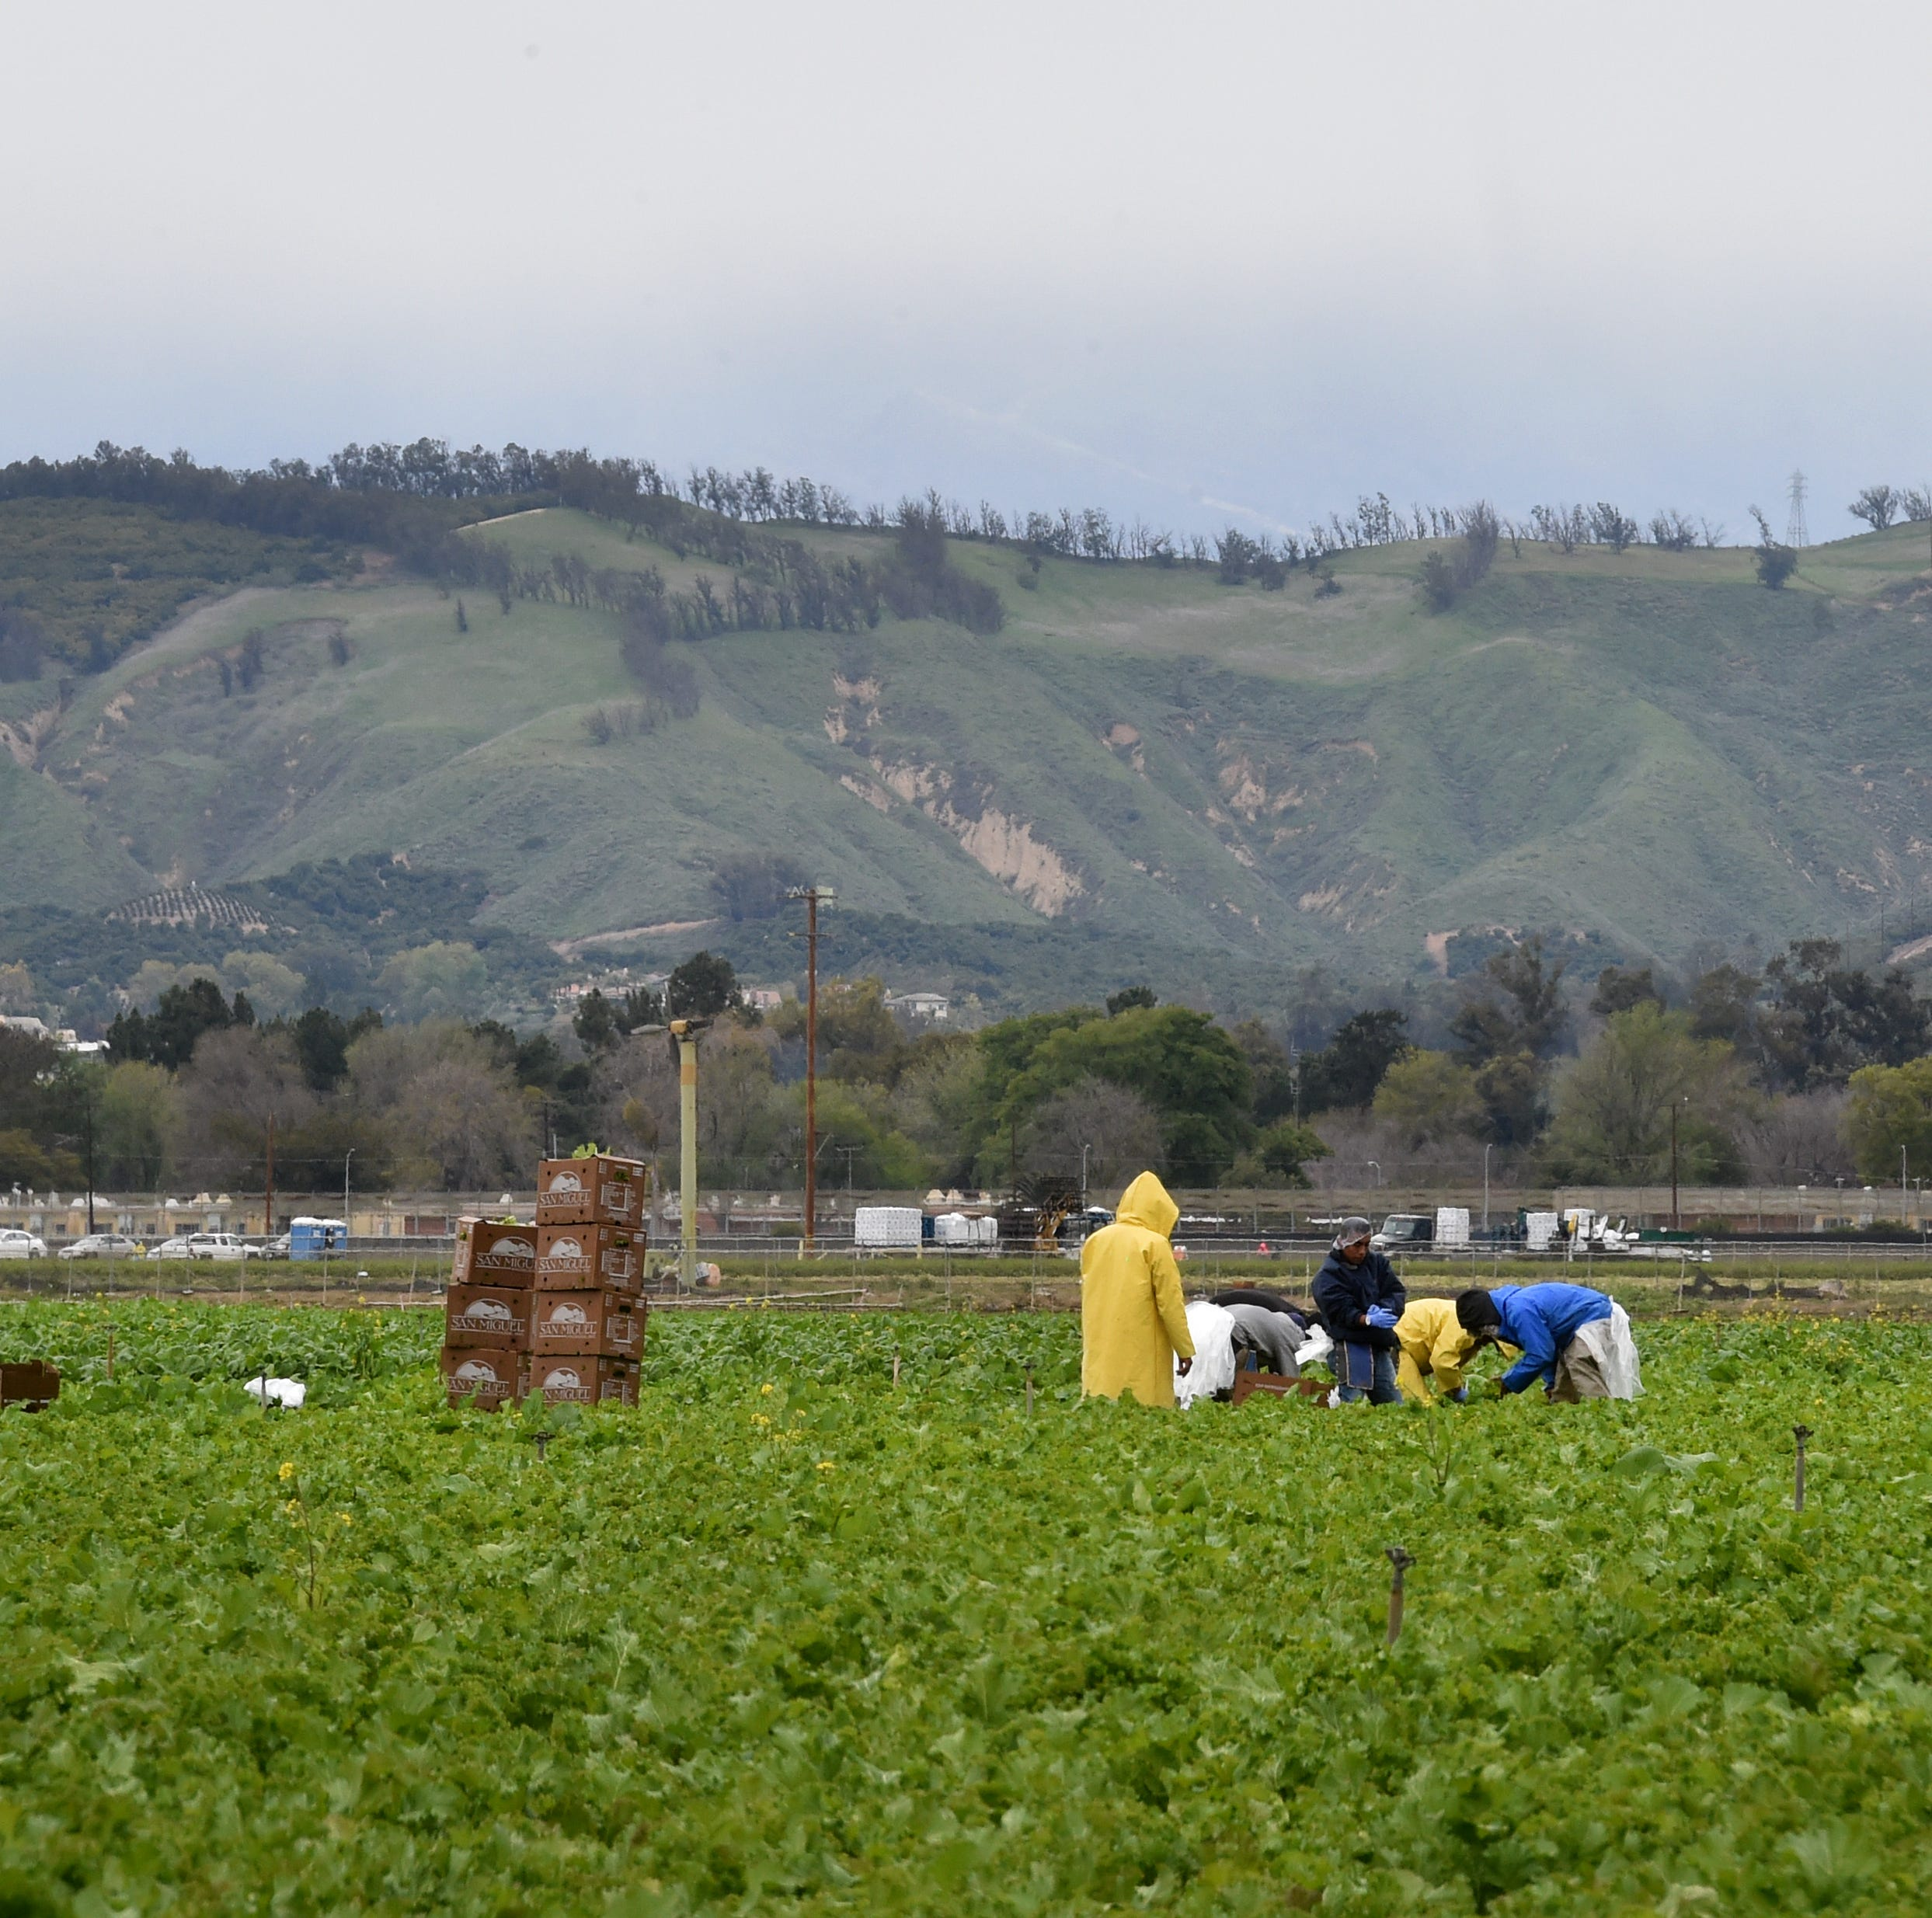 Storm rolls through Ventura County as farmers welcome steady rains